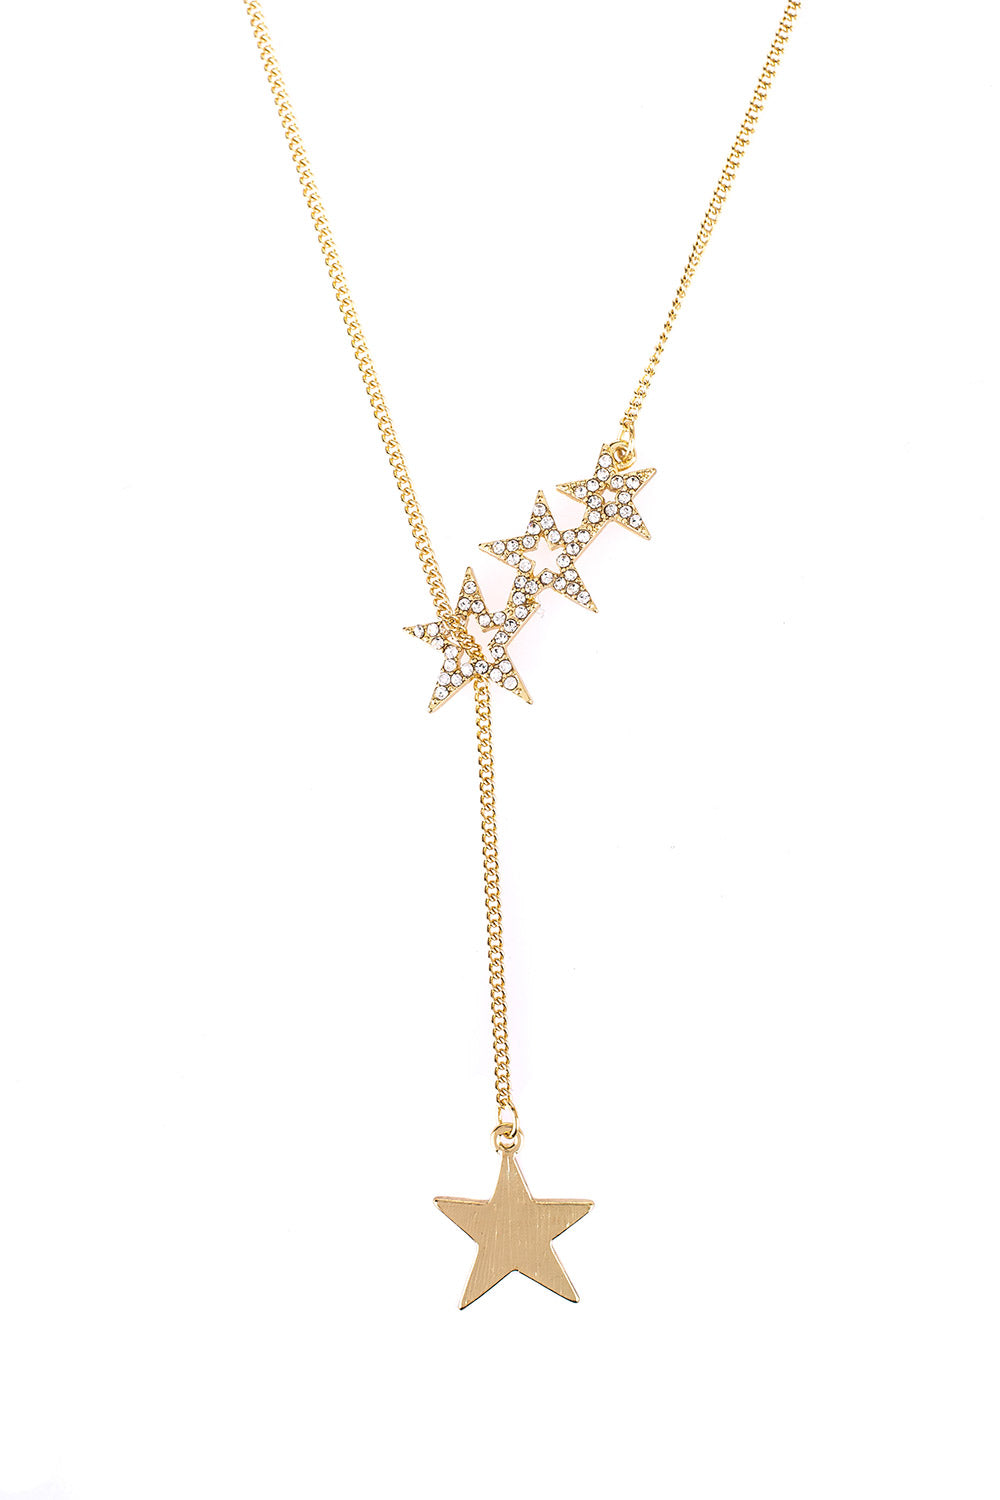 Type 1 Stardom Necklace